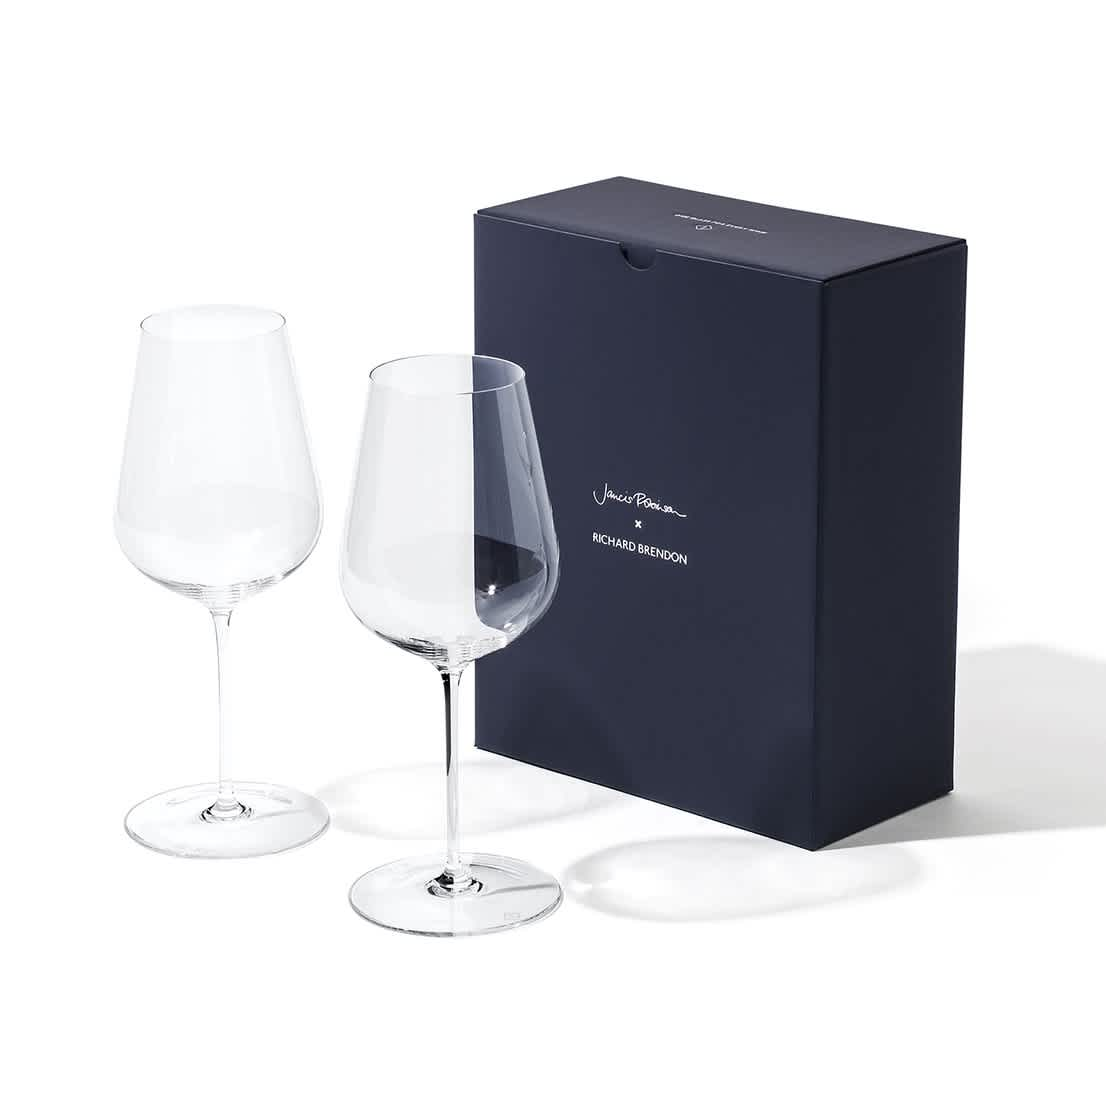 The Wine Glass Set of 2